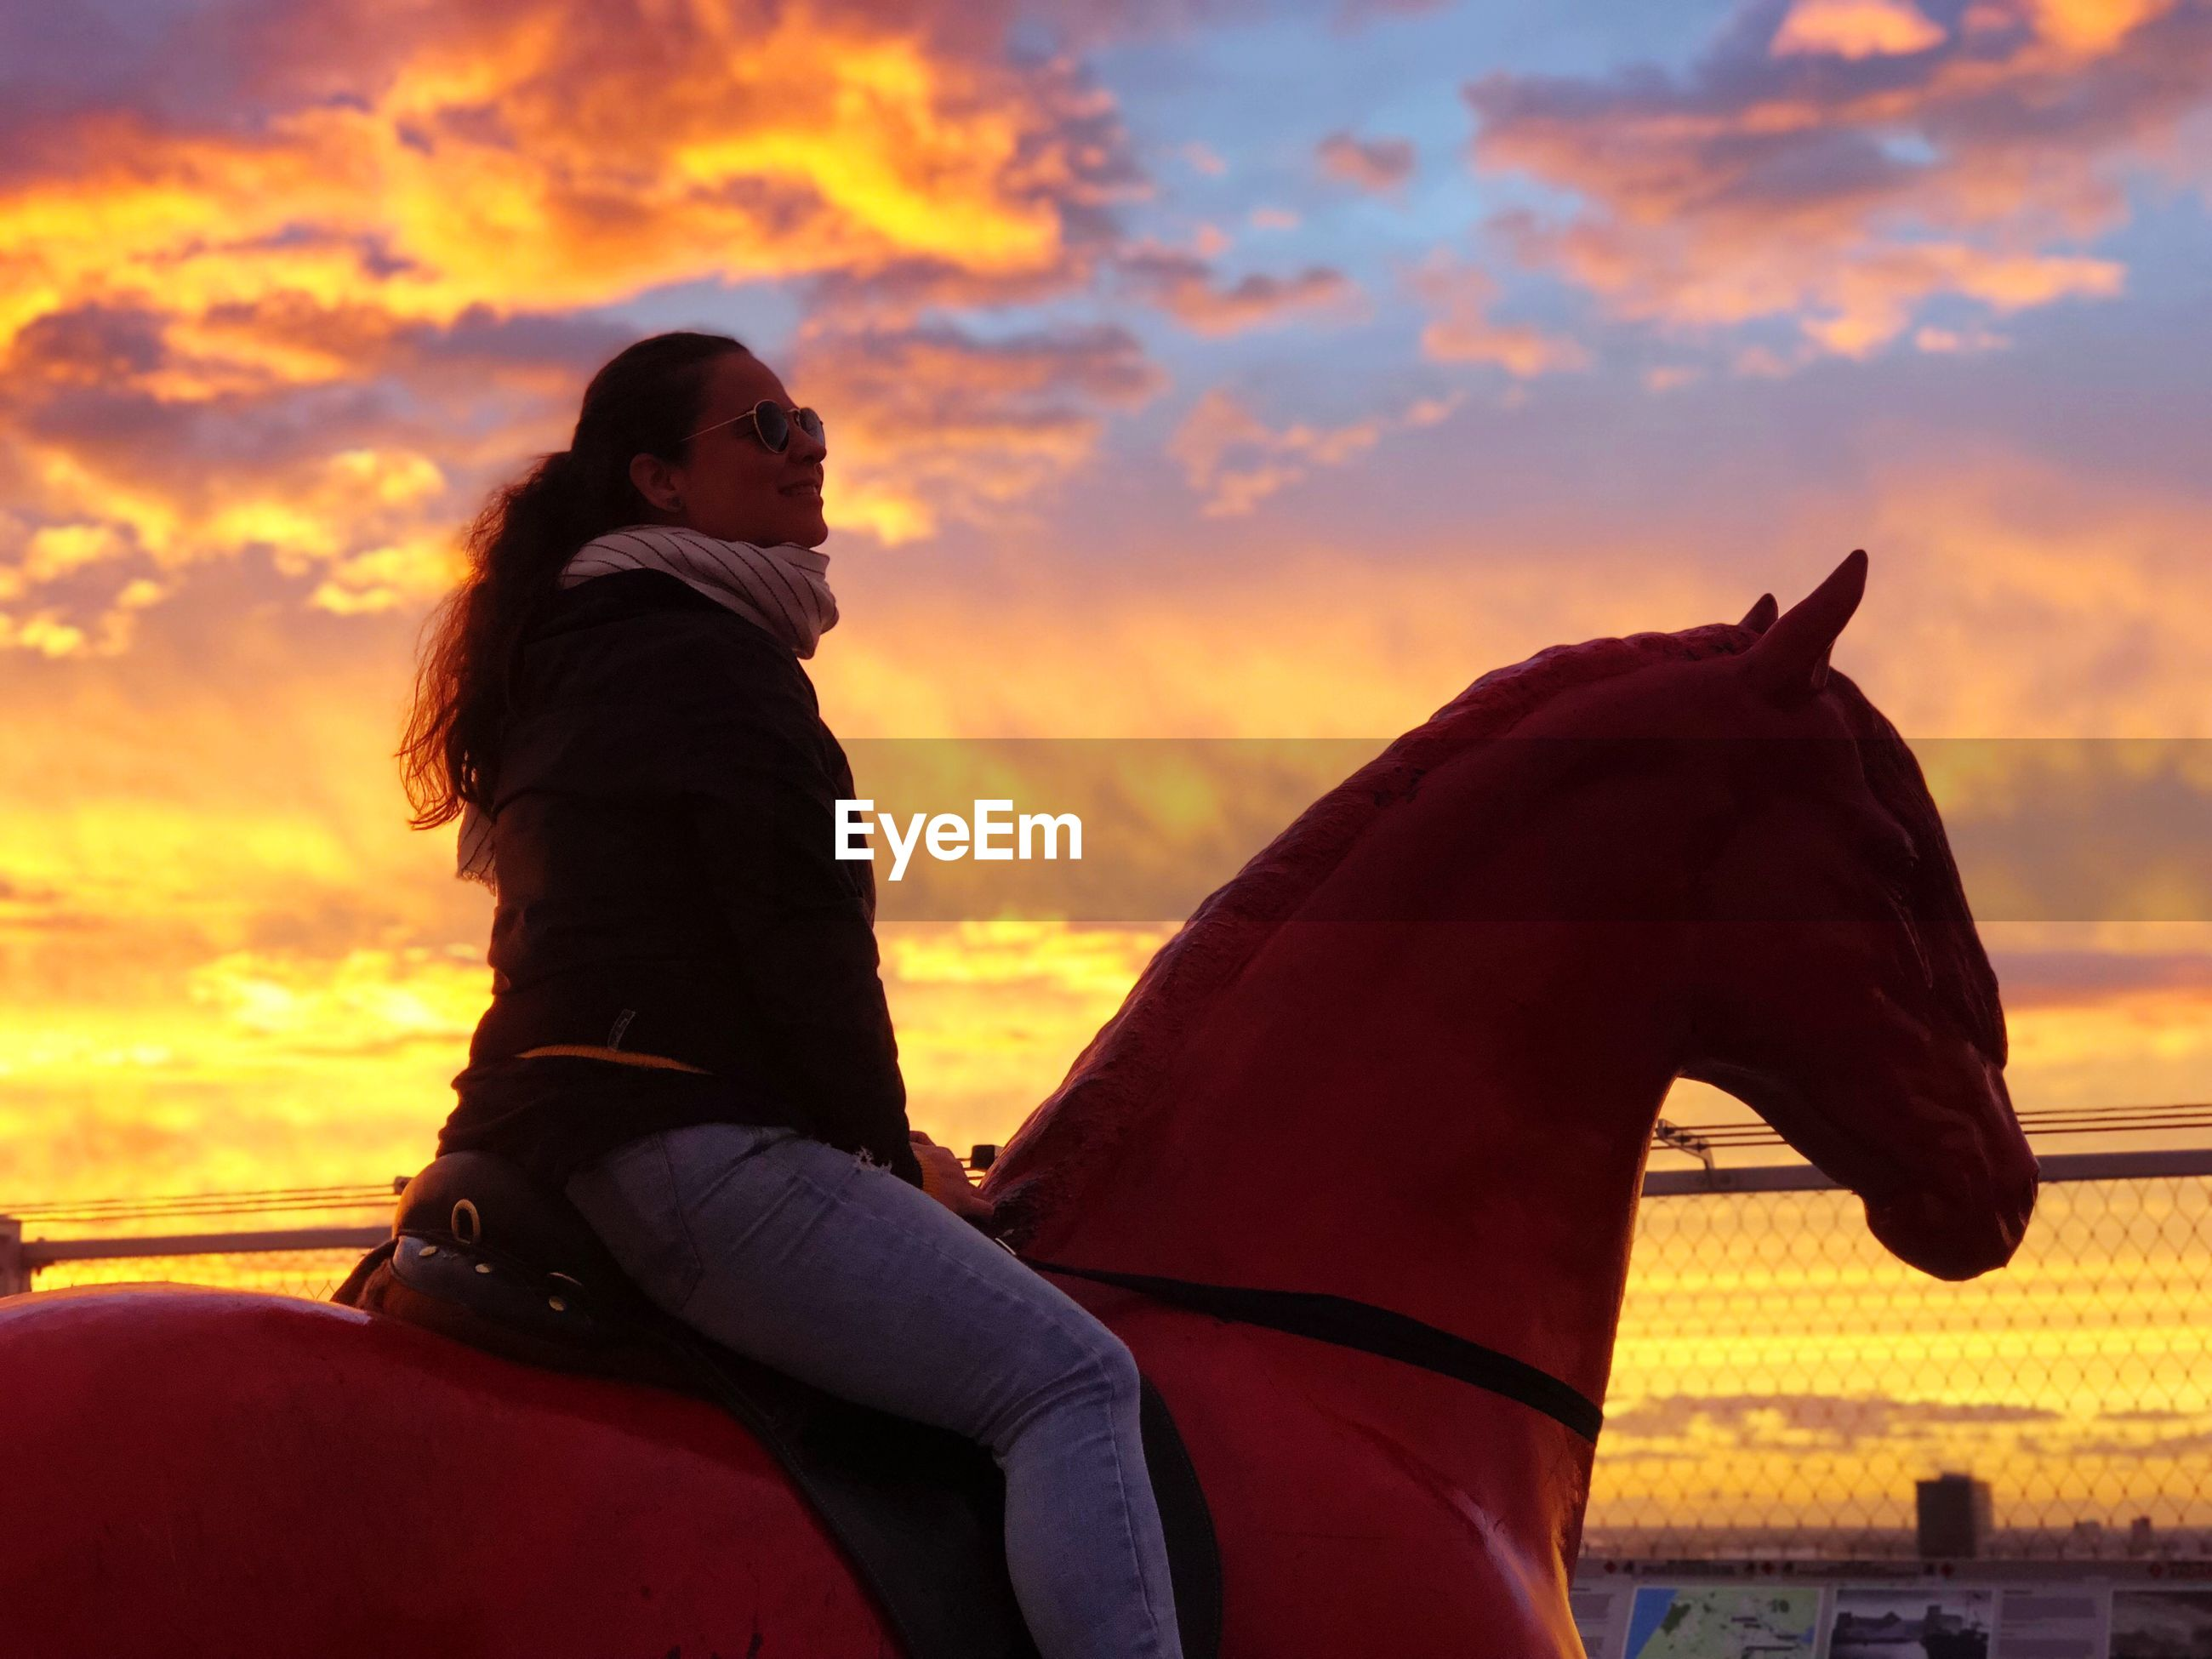 Woman sitting on horse statue against sky during sunset